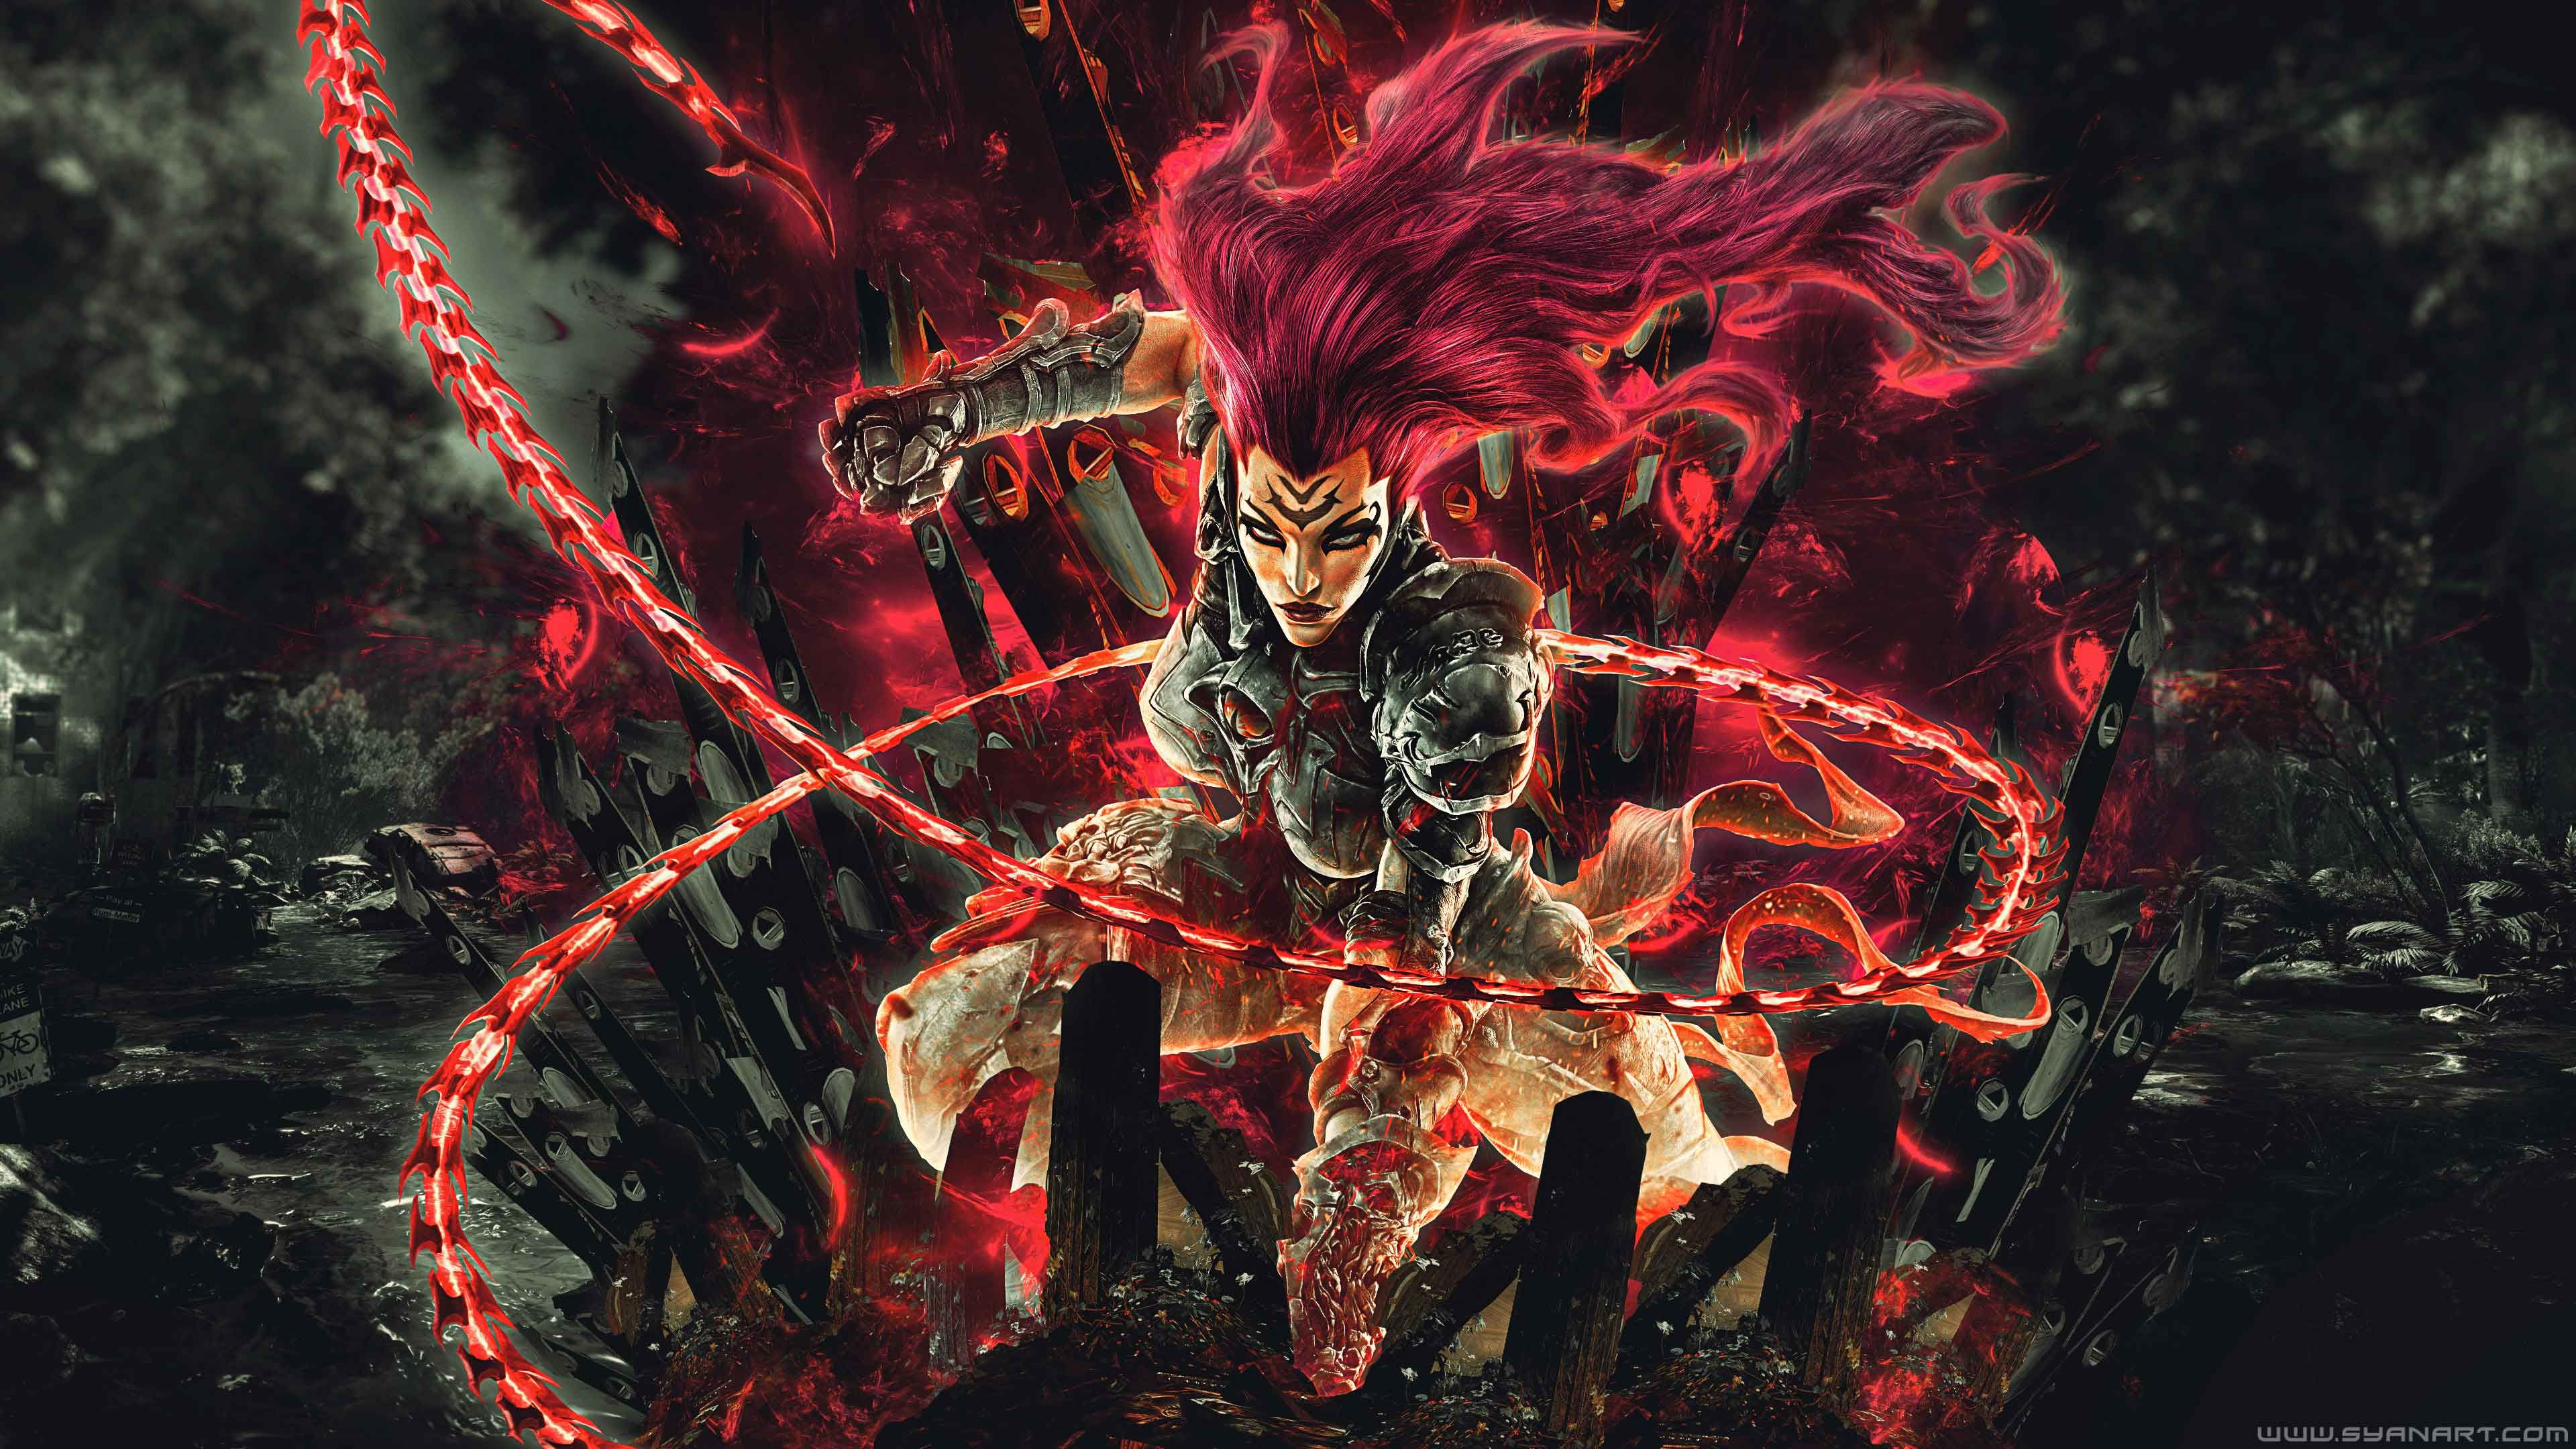 Pin By Games On Darksiders 3 In 2019 Darksiders 3 Games